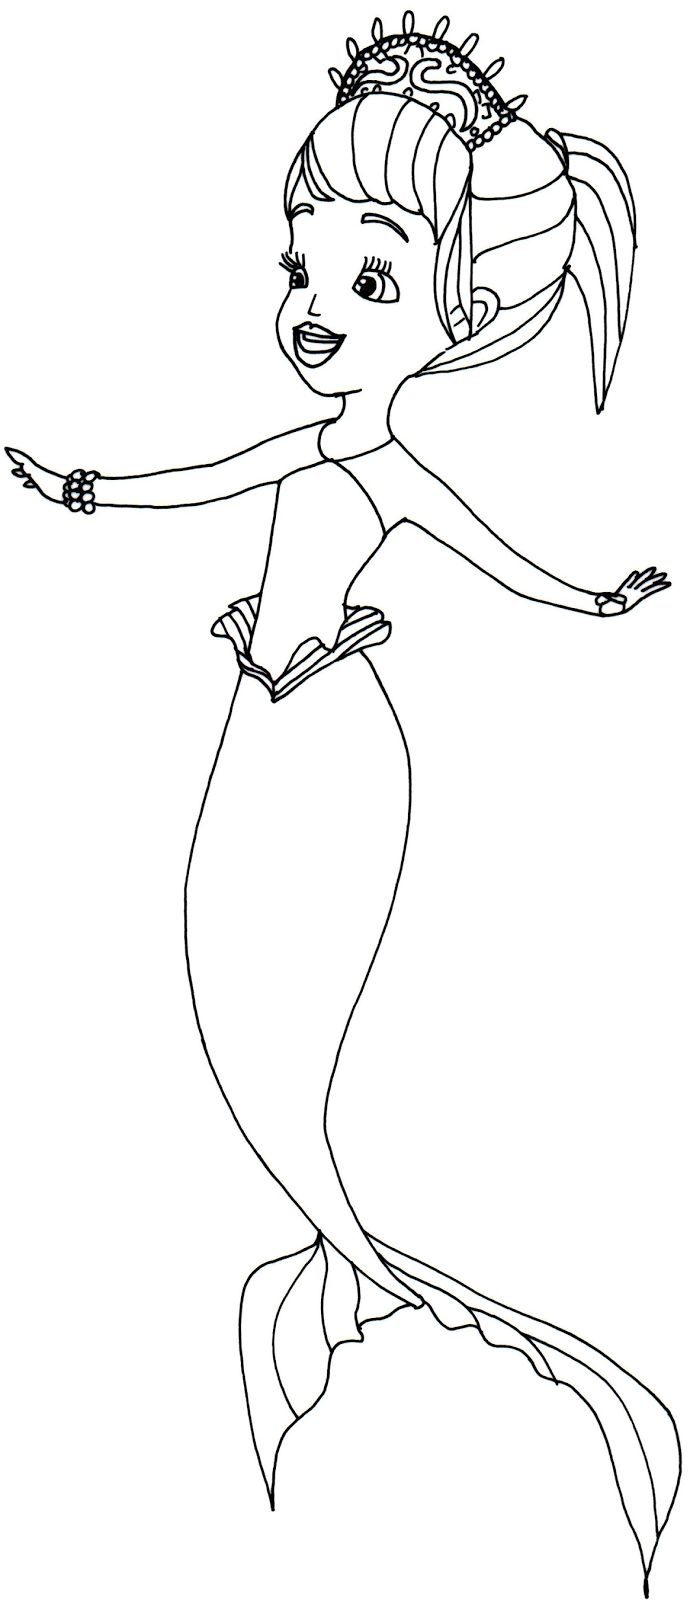 Princess hildegard coloring pages - Sofia The First Coloring Pages Oona